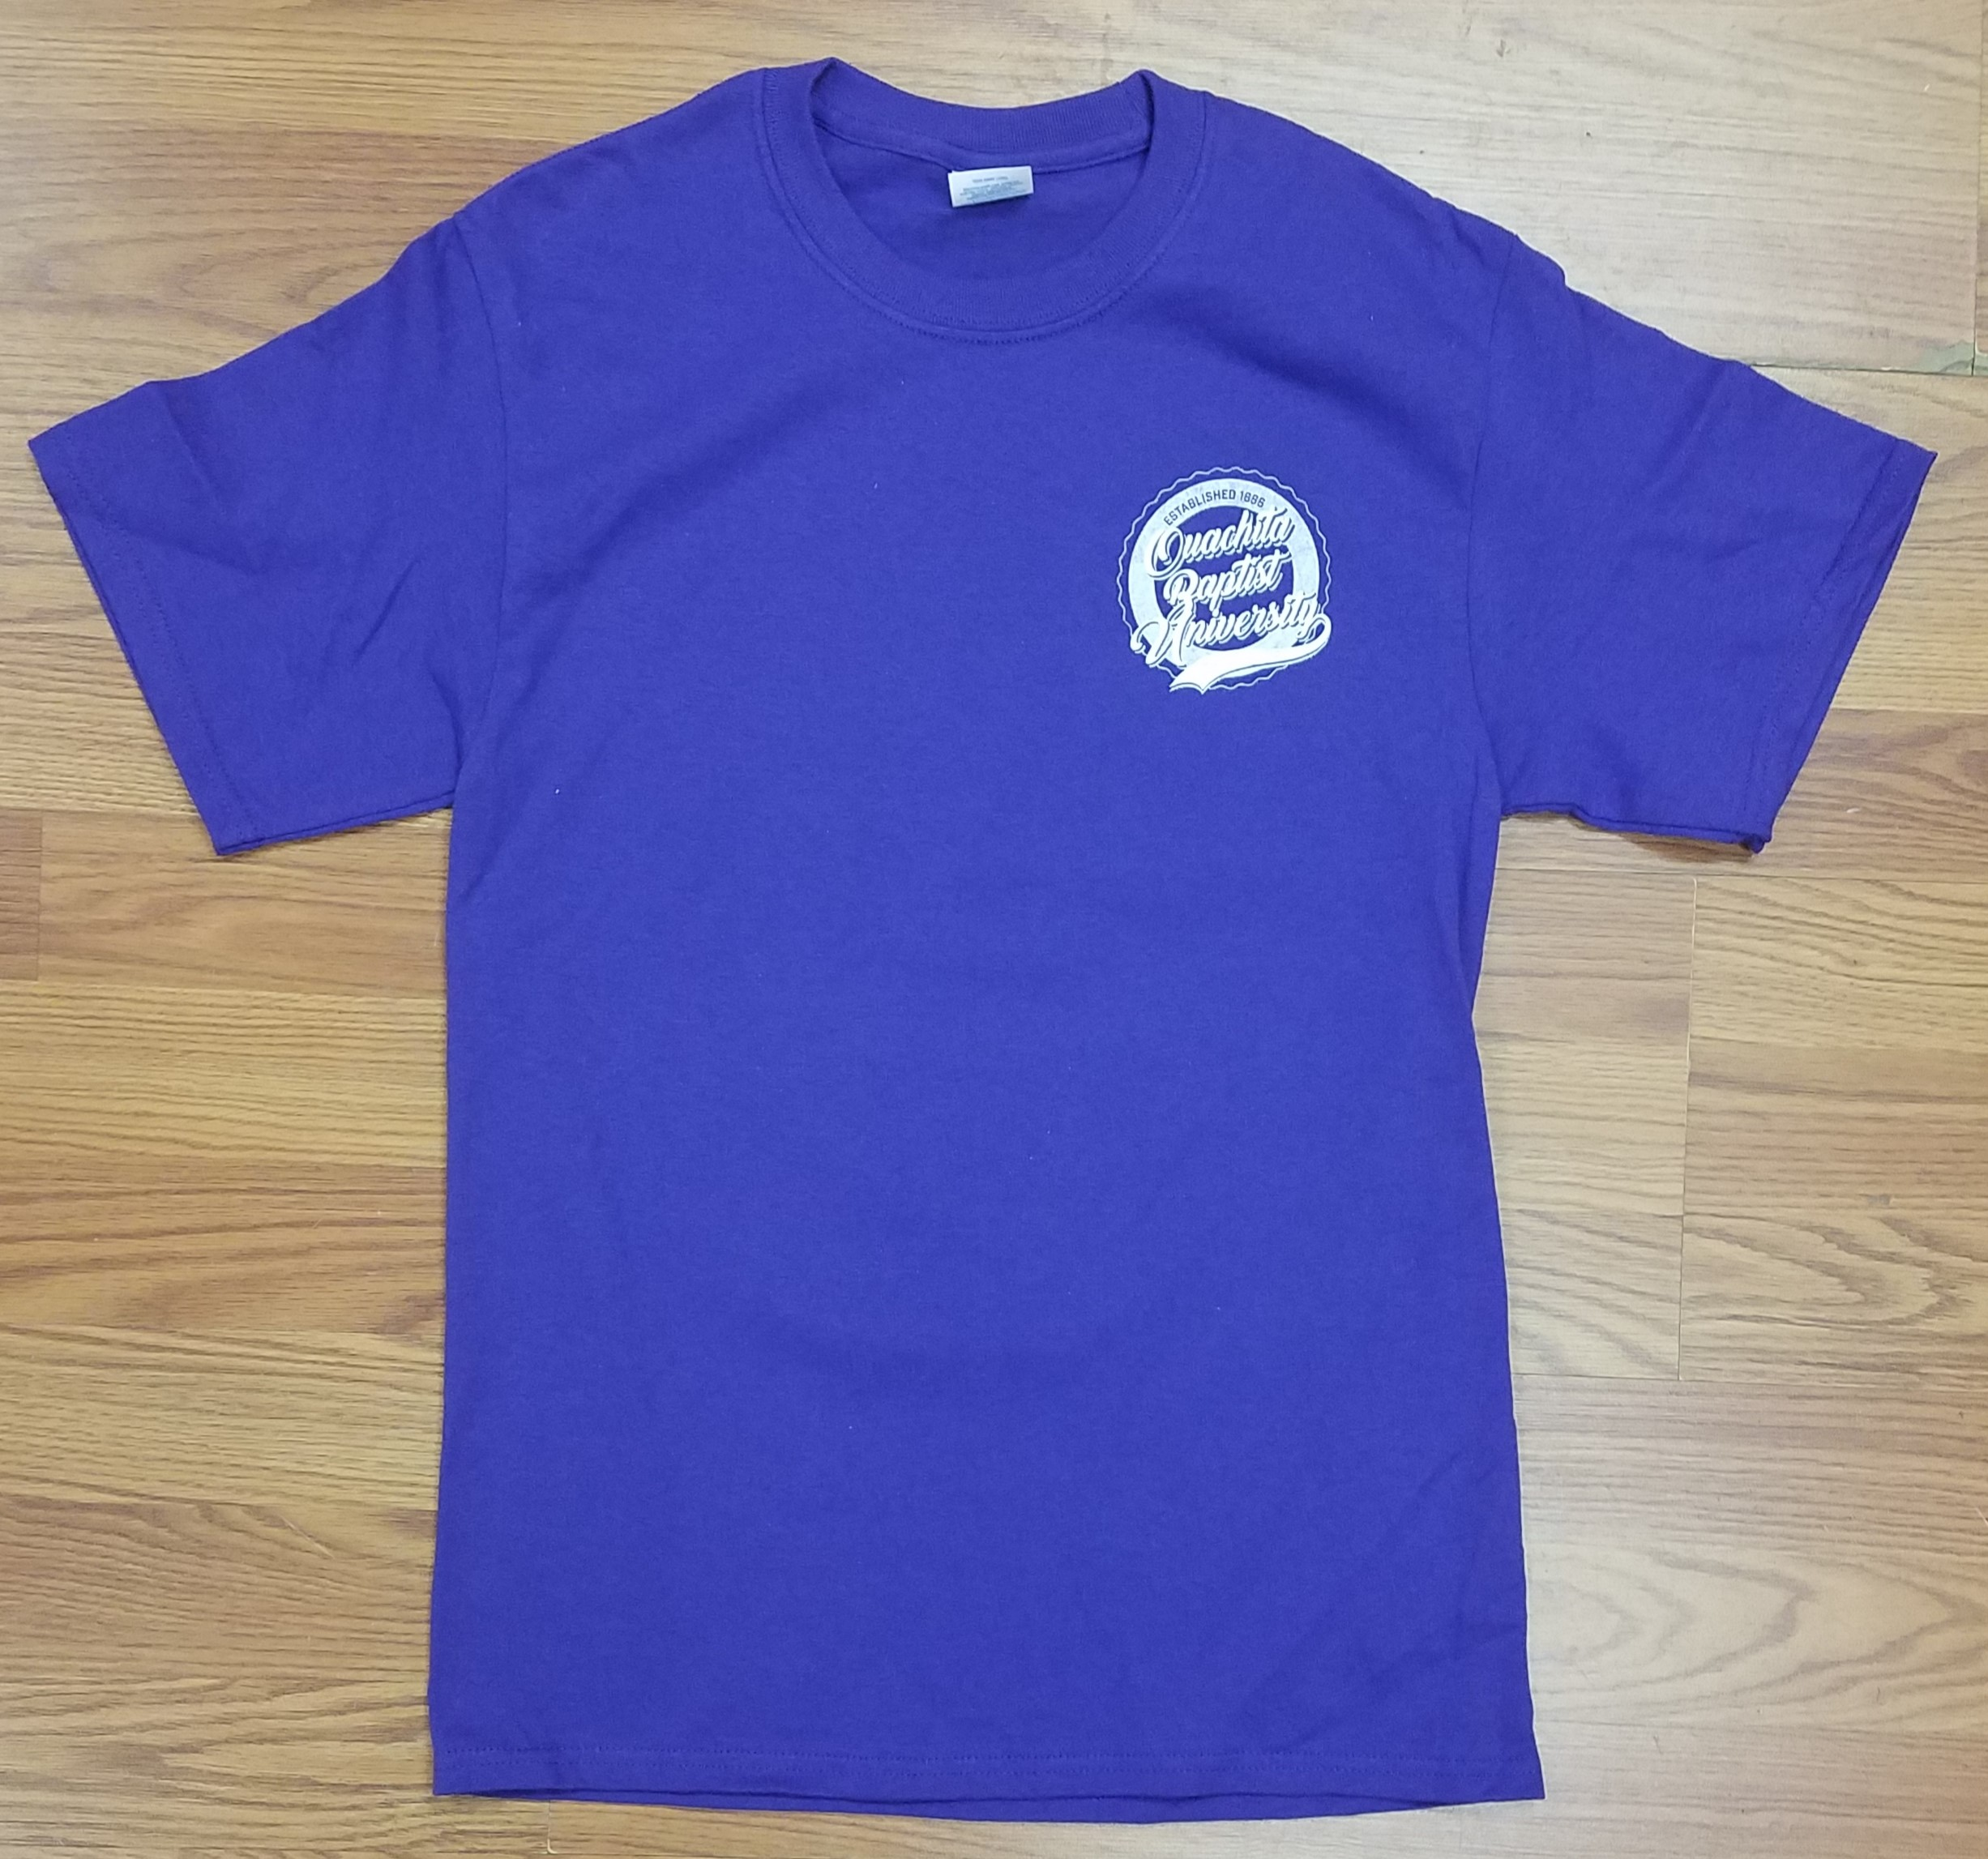 OUACHITA BAPTIST UNIVERSITY SS TEE